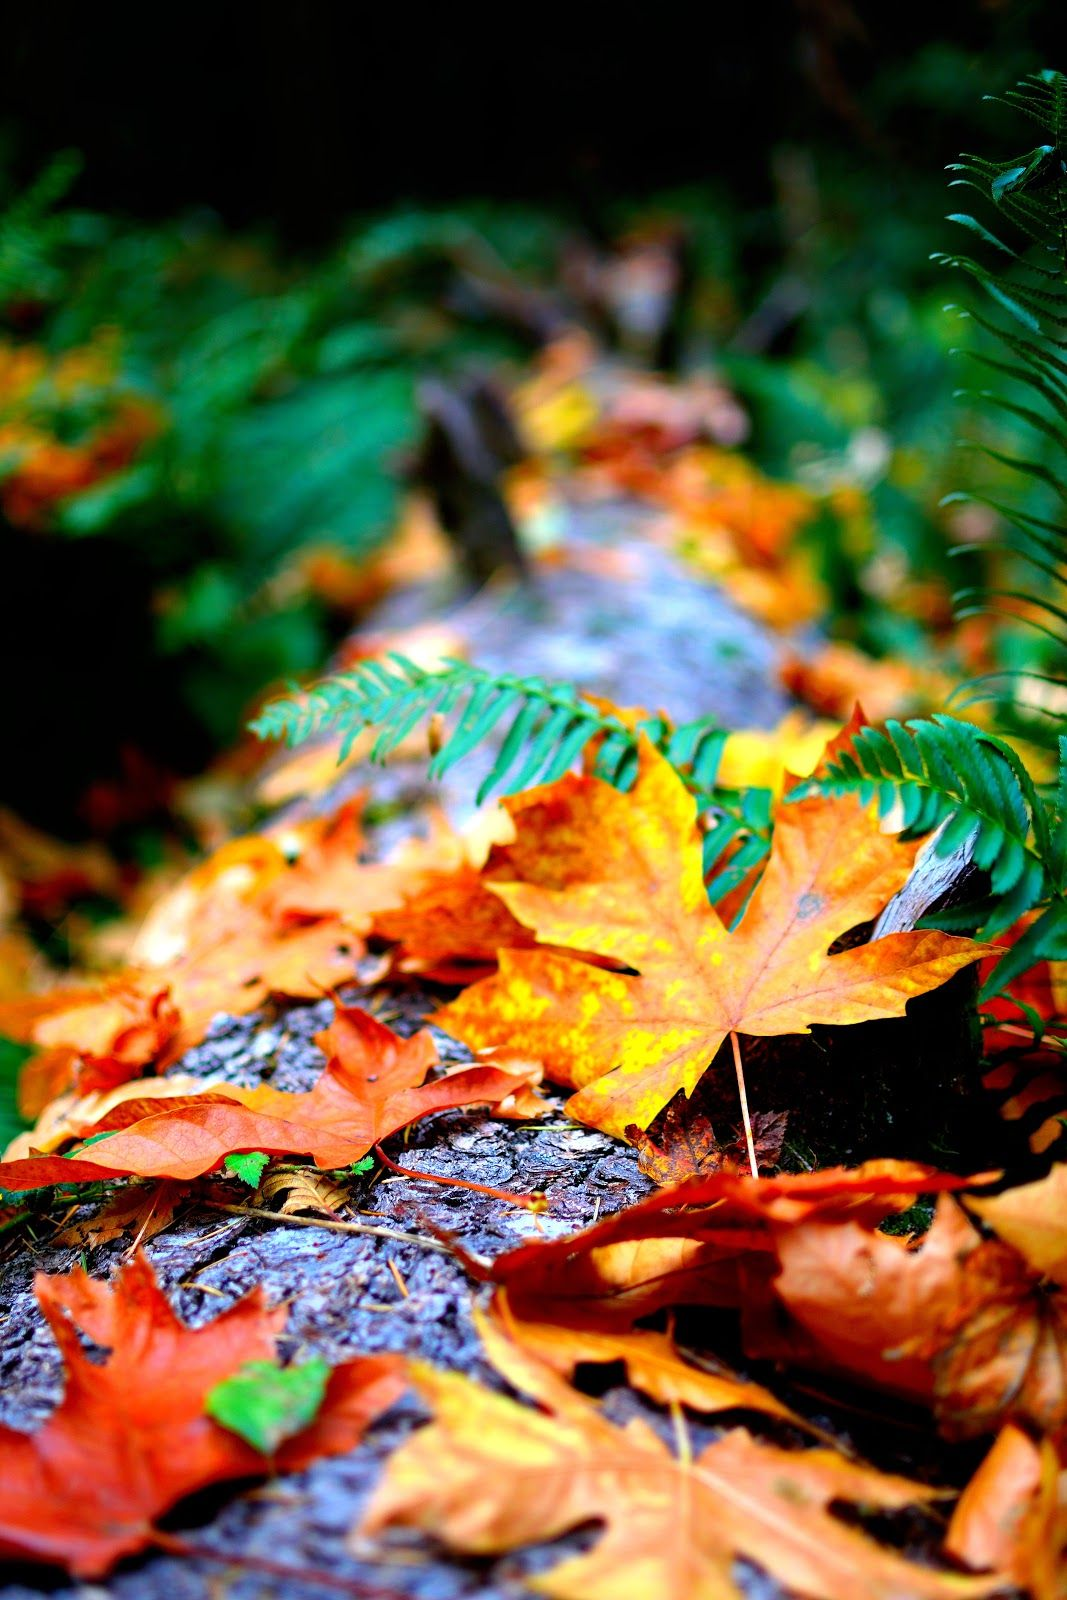 4k Wallpaper Autumn Leaves Blur Close Up Photo of Dry